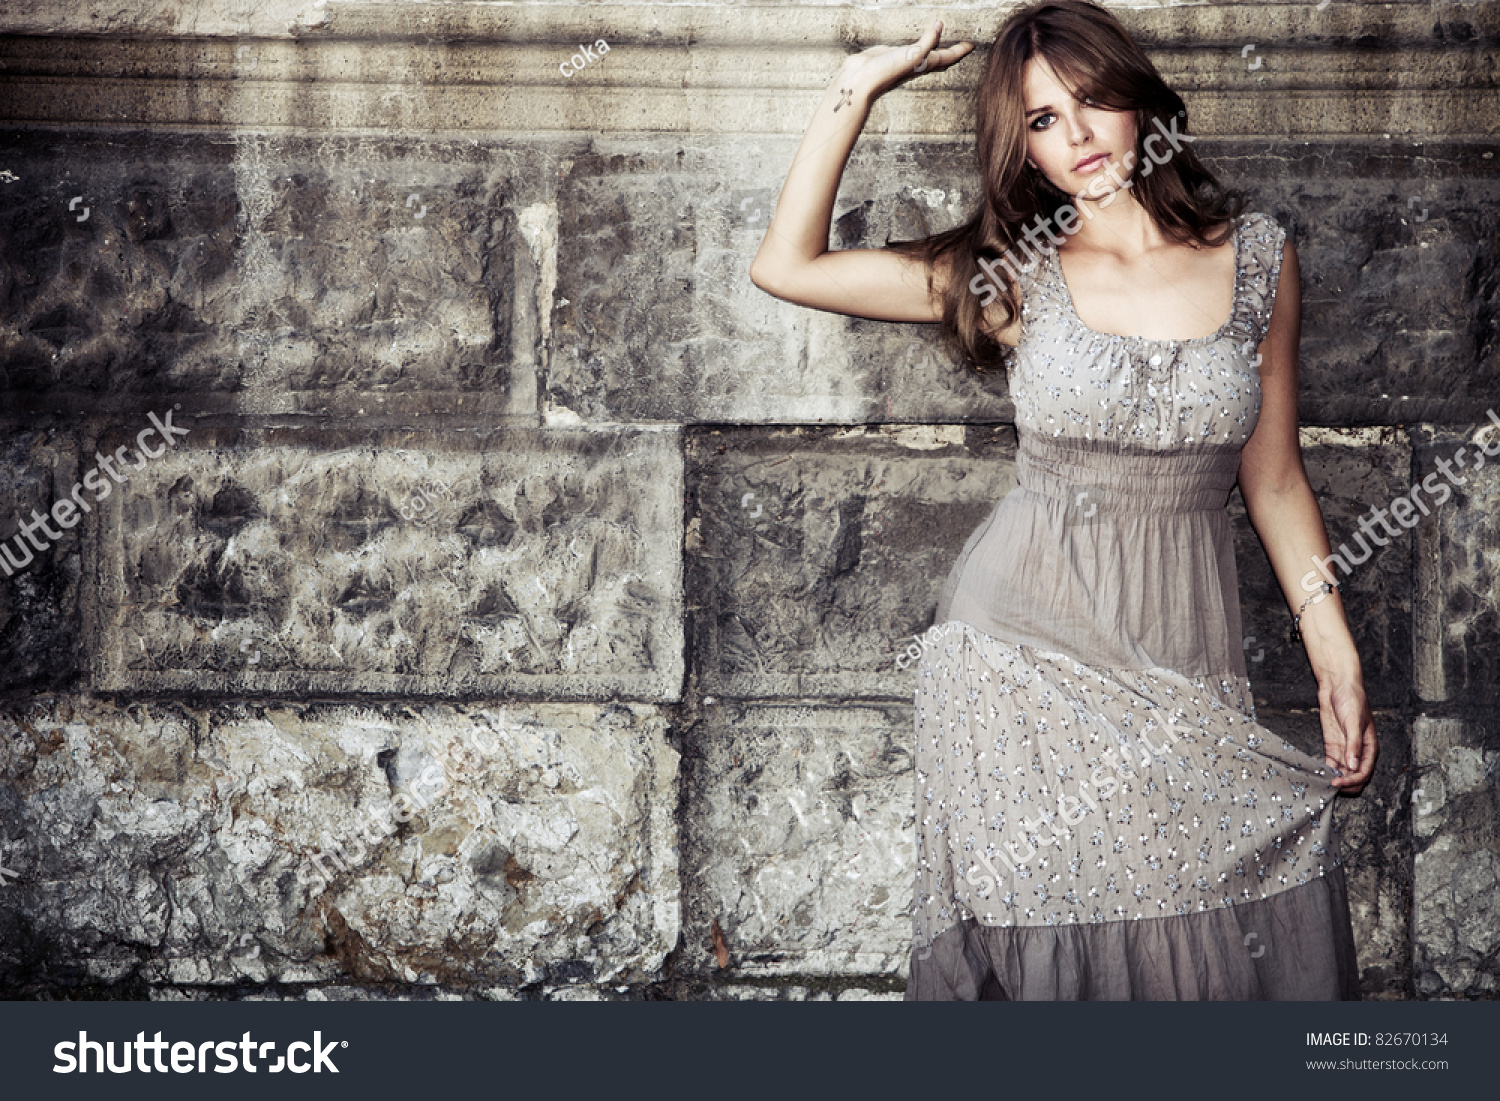 44dd9f3864 Young Woman Summer Dress Against Old Stock Photo (Edit Now) 82670134 ...